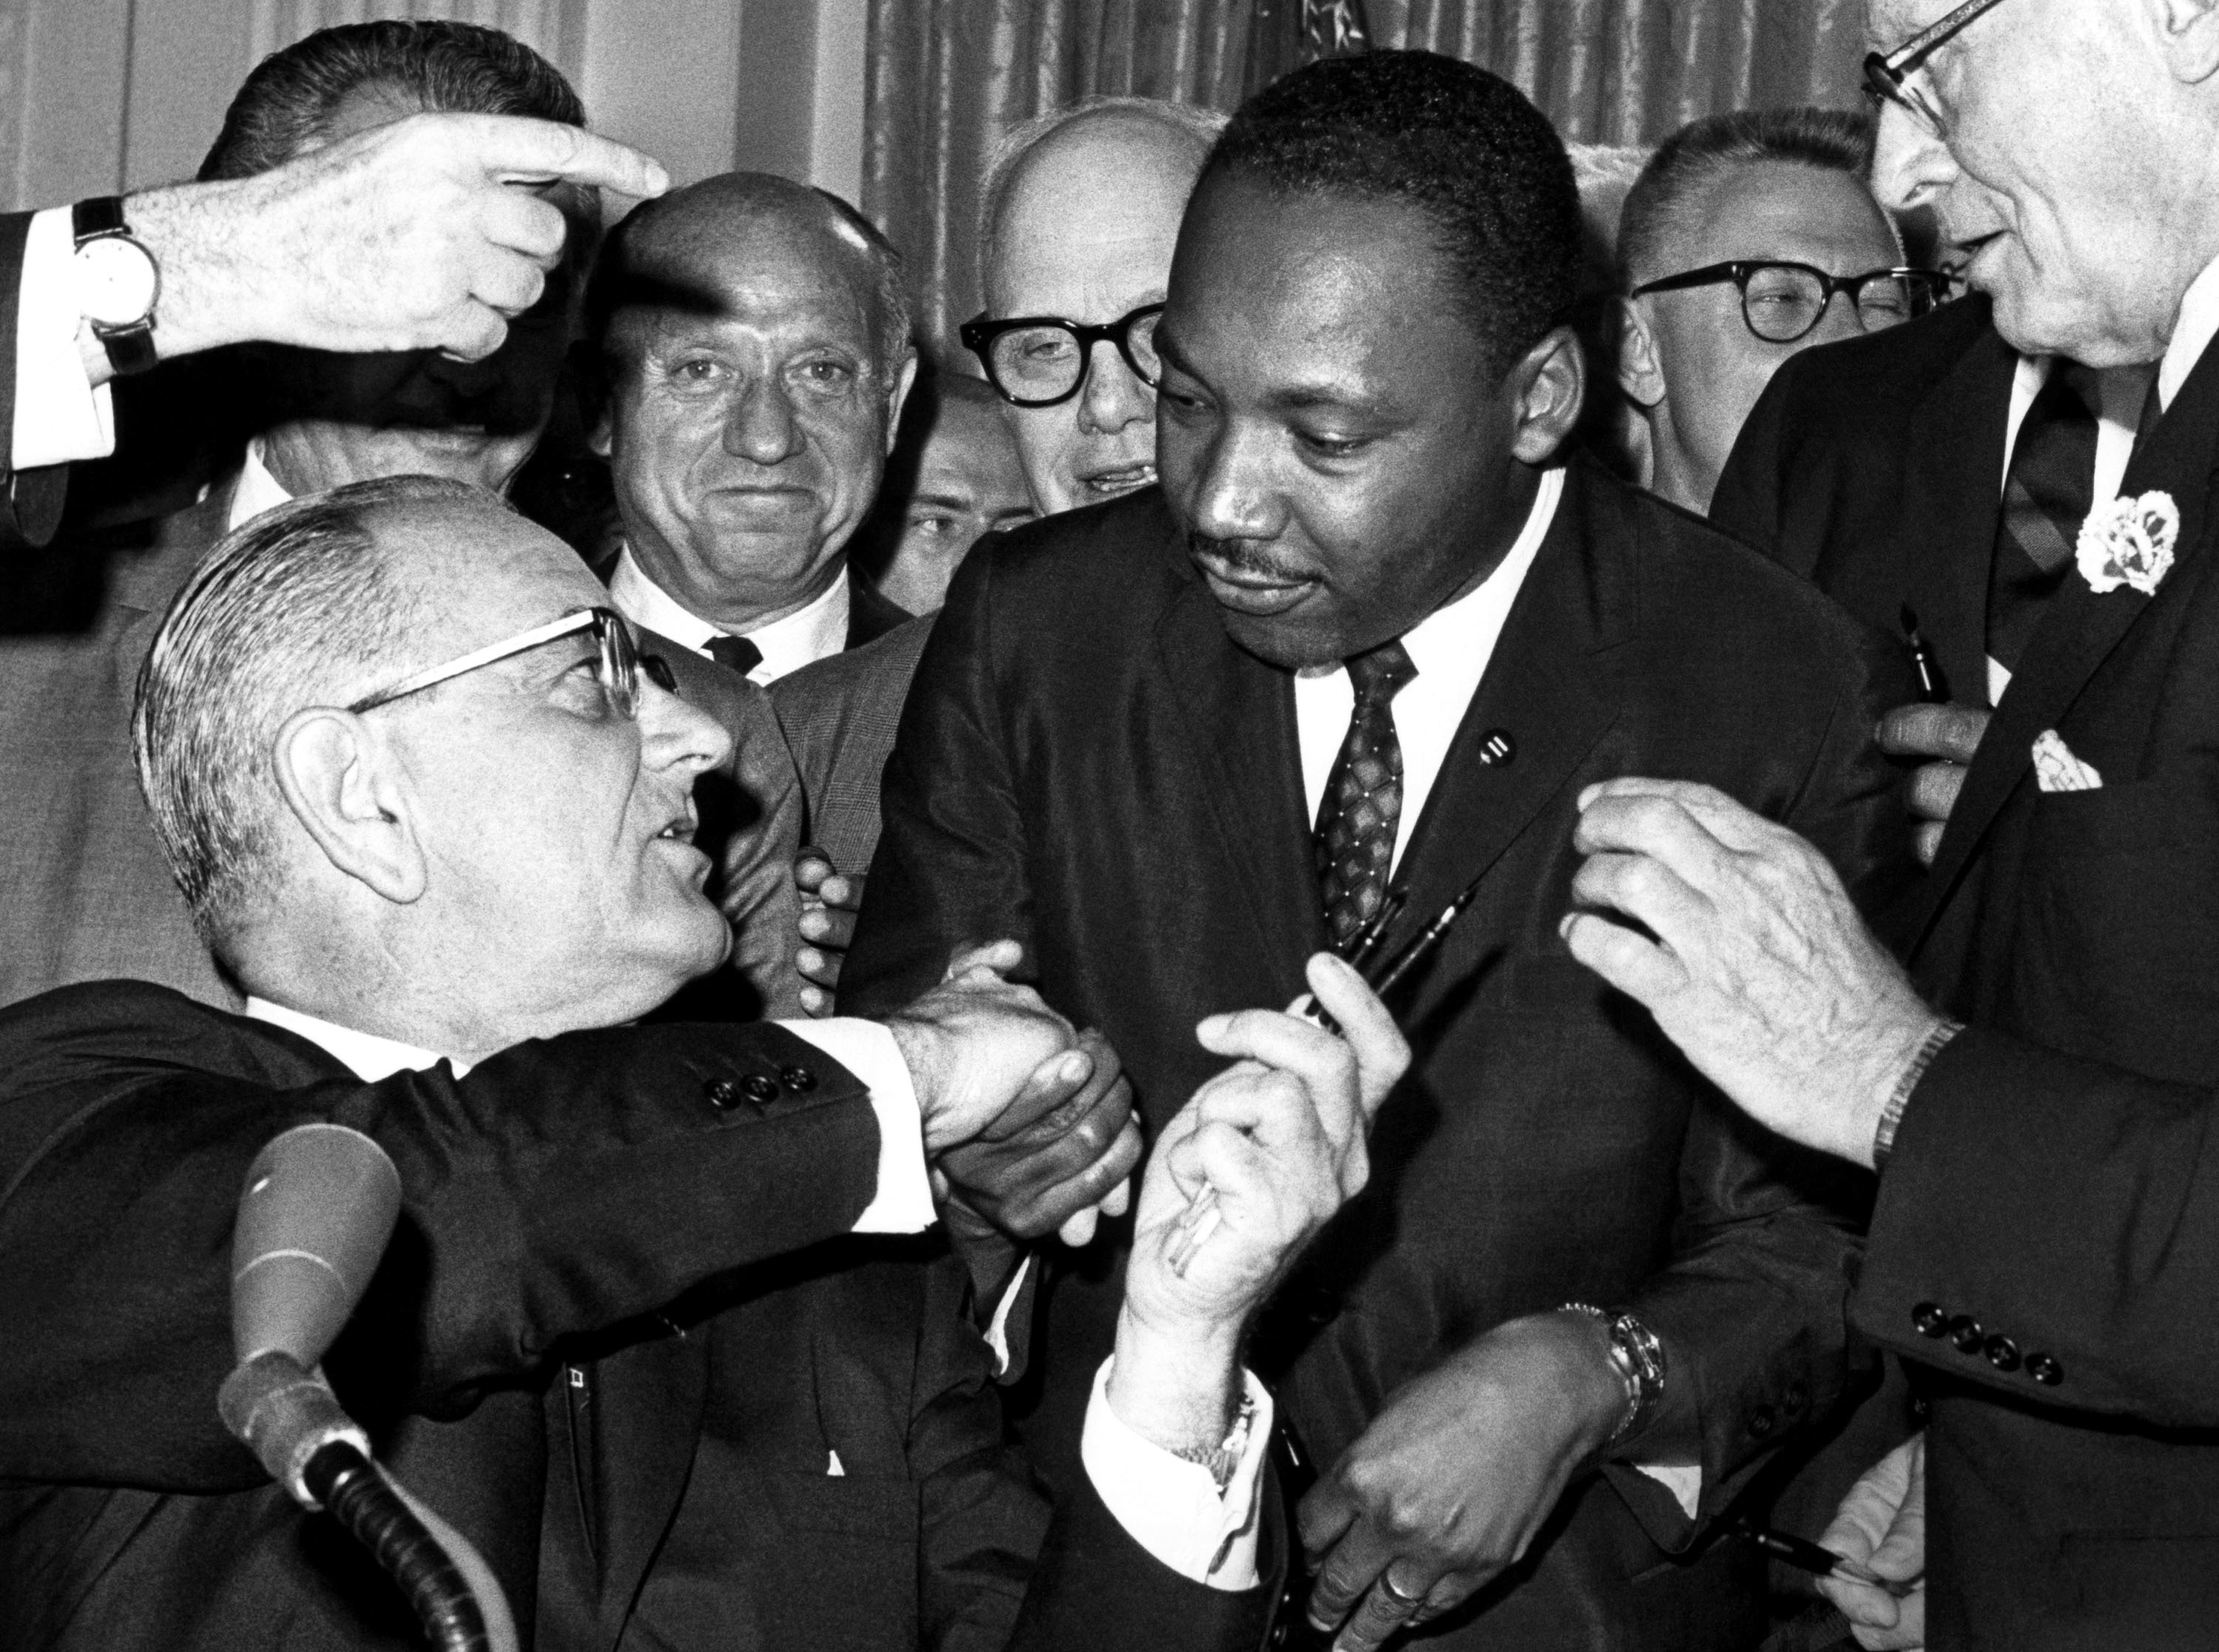 essays on civil rights act of 1964 Title vii of the civil rights act of 1964 title vii of the civil rights act of 1964 introduced the concepts of protected classes and unlawful employment practices to american business - title vii of the civil rights act of 1964 introduction.